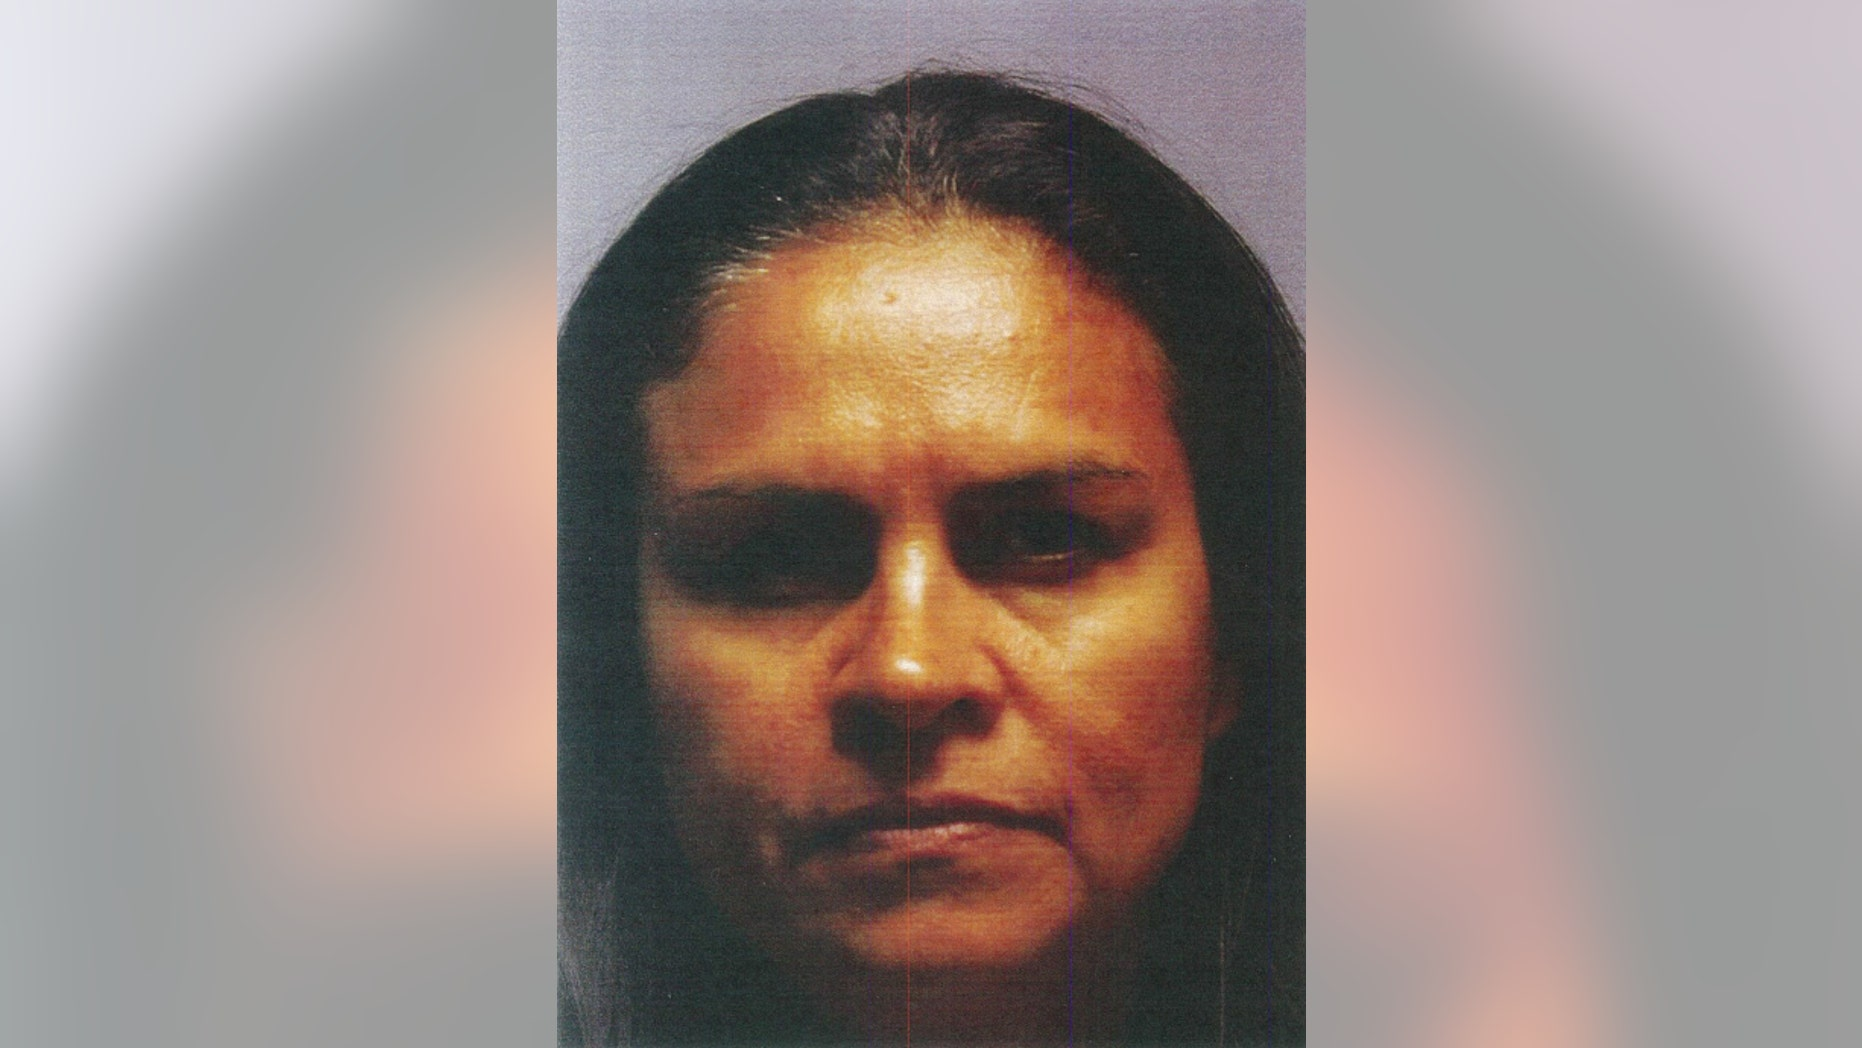 """This undated photo provided by the Balch Springs, Texas, Police Department shows Araceli Meza. Meza, who operated a church at her suburban Dallas home, has been arrested for allegedly helping starve a 2-year-old boy to rid him of a """"demon,"""" then holding a resurrection ceremony shortly after he died to try to revive him, investigators said Tuesday, April 14, 2015. Meza was charged Monday with injury to a child causing serious bodily injury by omission. (Balch Springs Police Department via AP)"""